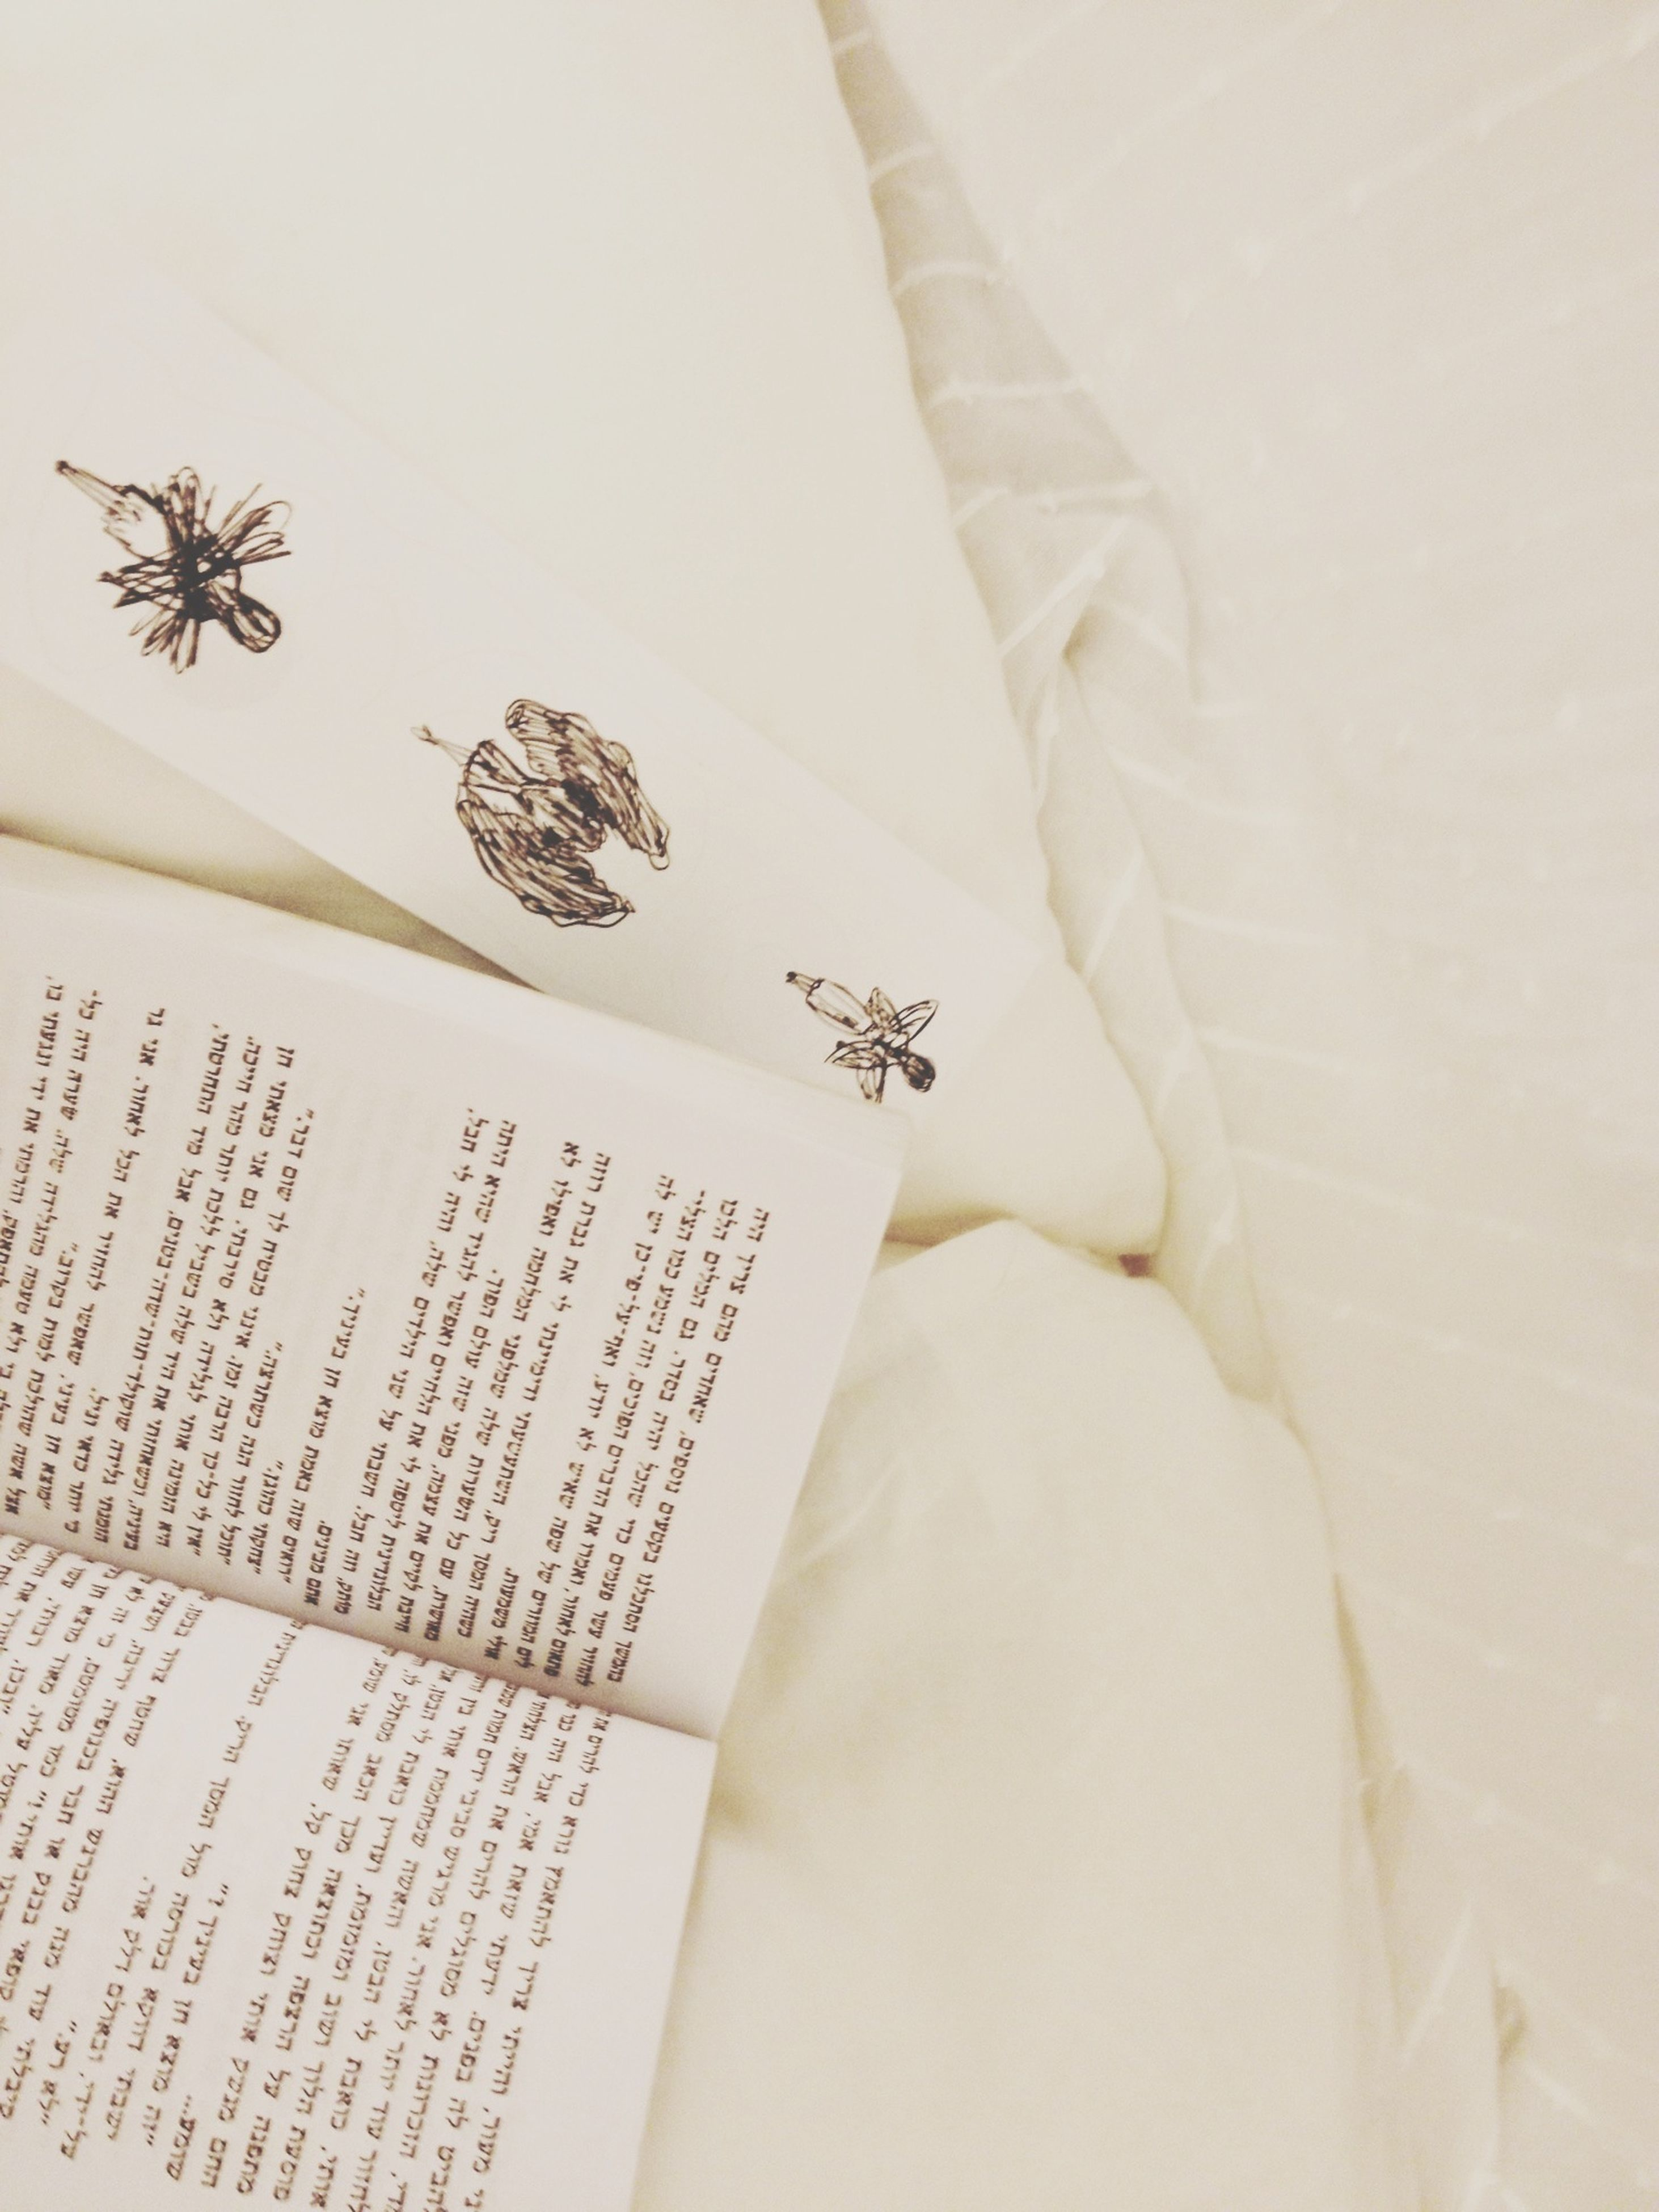 indoors, paper, book, text, high angle view, still life, communication, white color, table, education, white background, close-up, western script, home interior, bed, white, wall - building feature, no people, document, studio shot